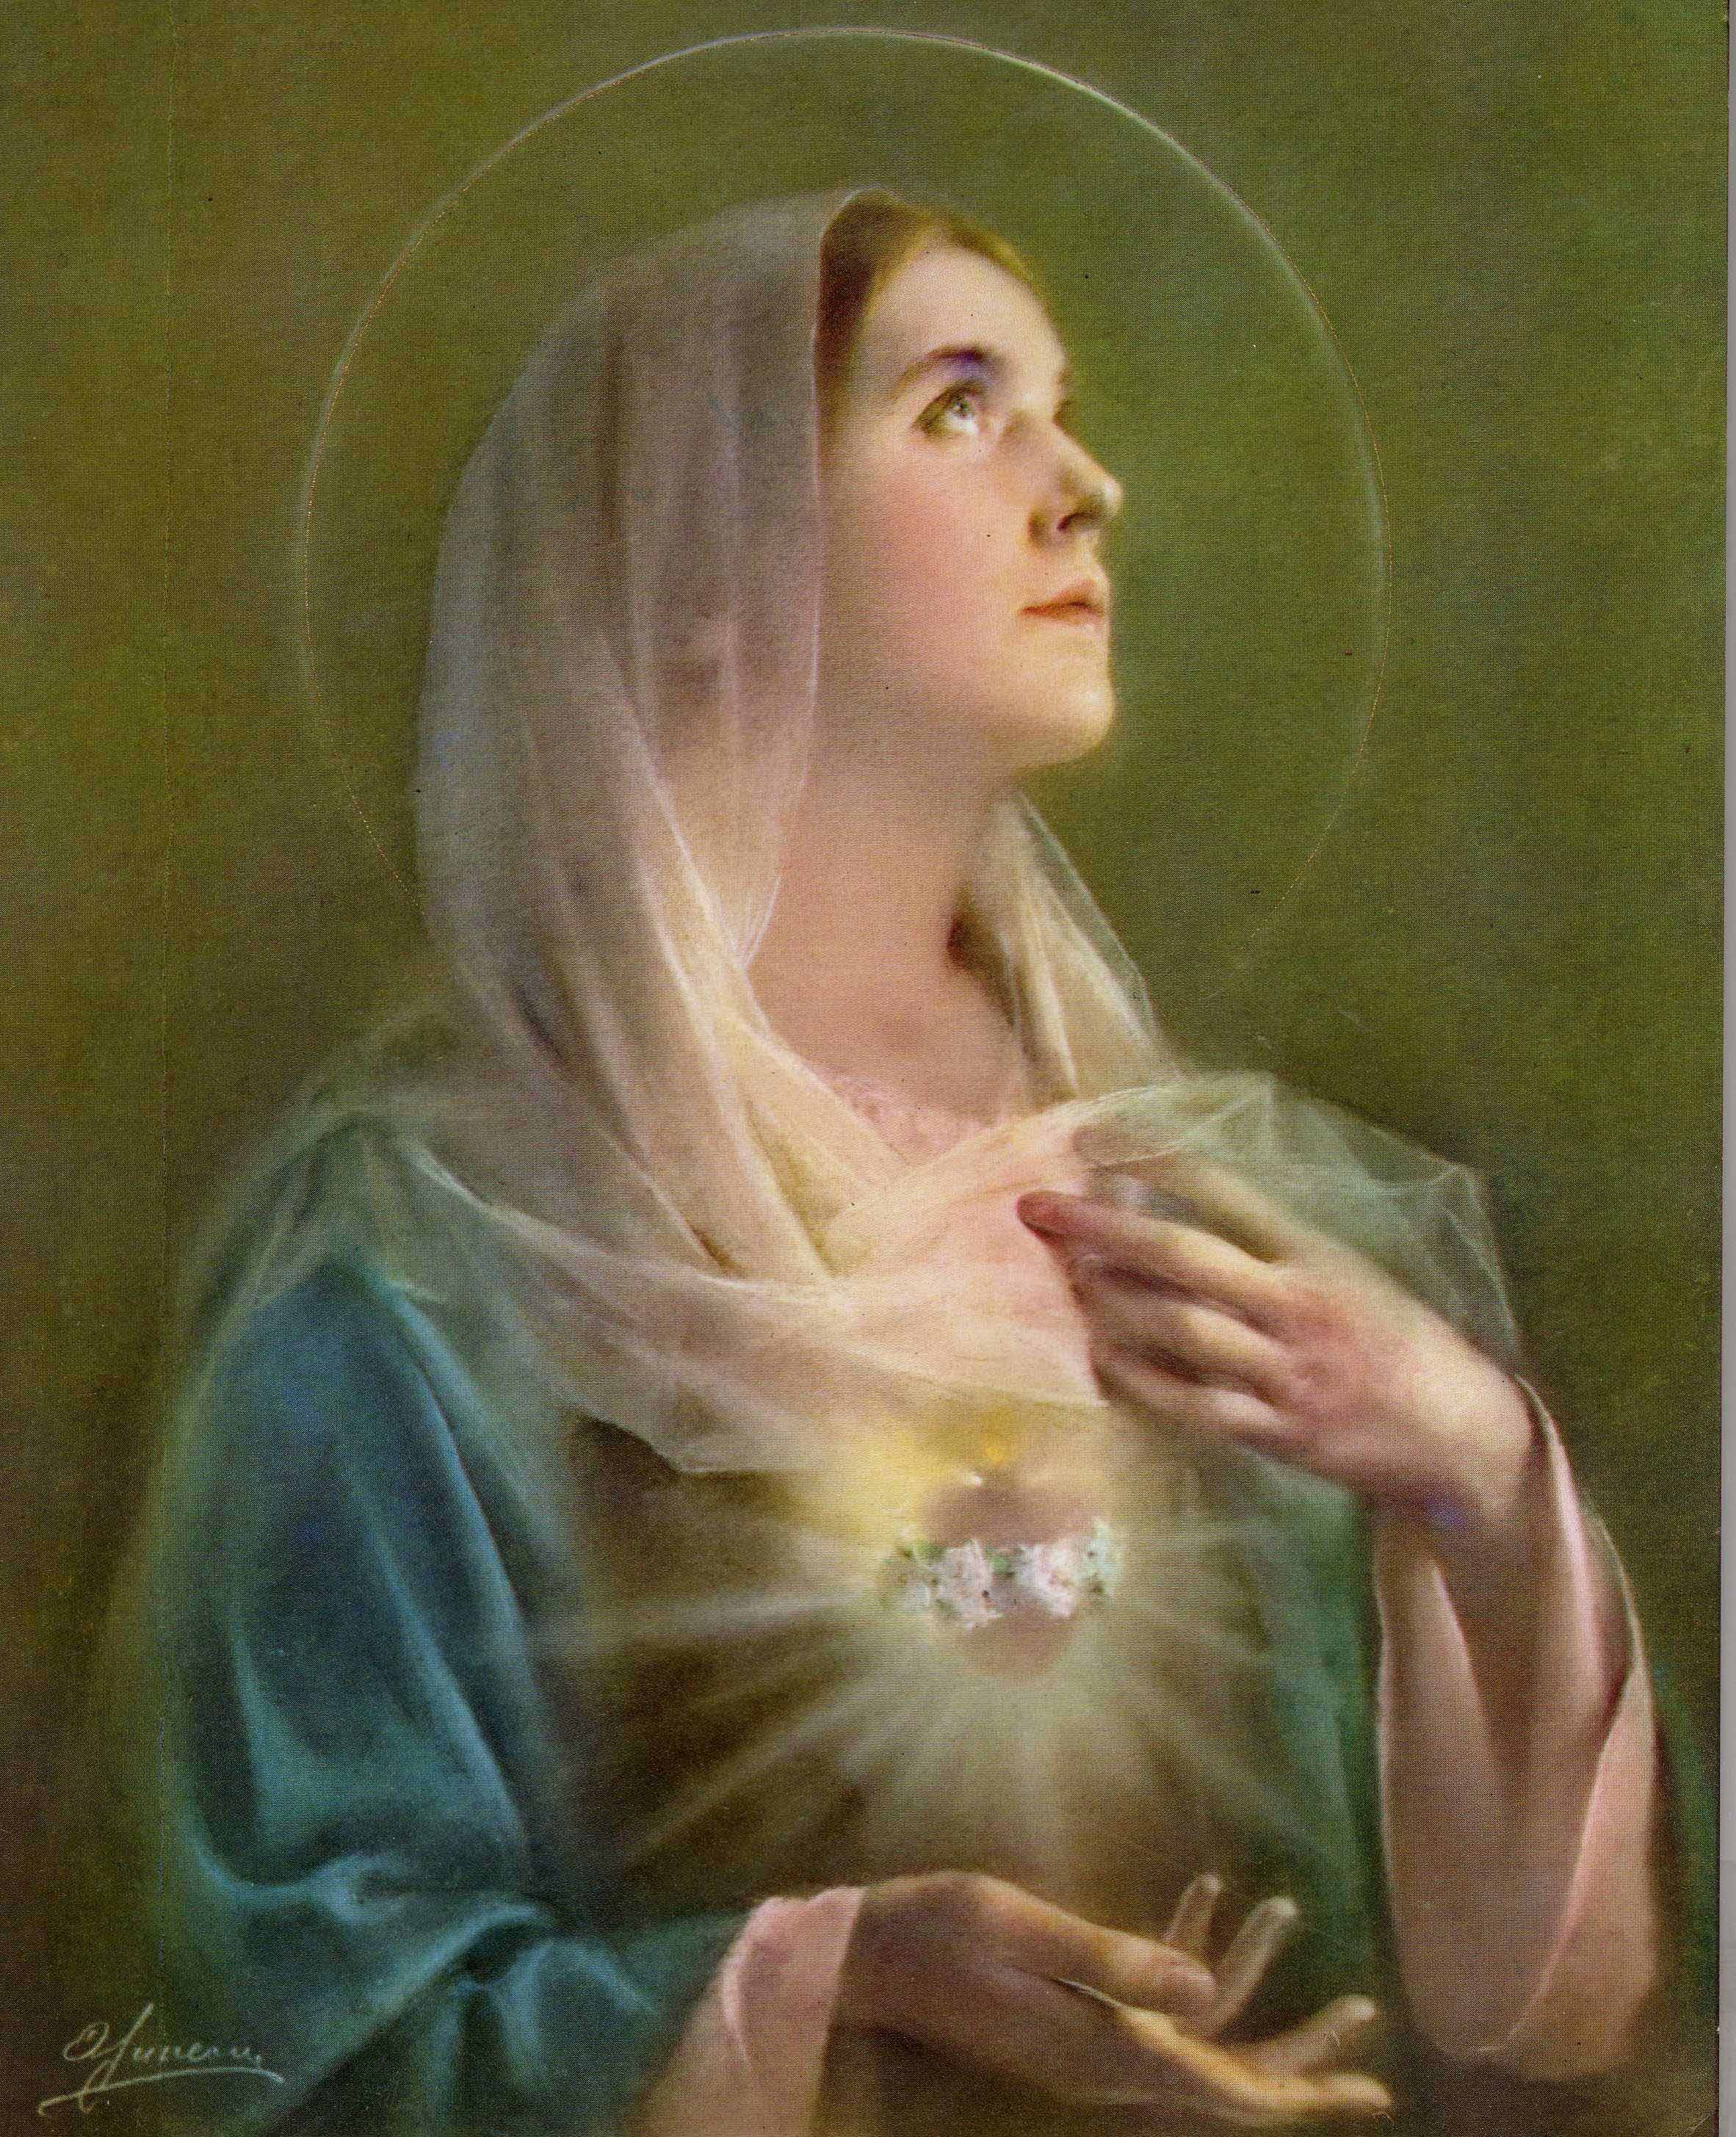 the holy virgin mother mary Who was the virgin mary was she the mother of god as is the case with jesus christ himself who is the virgin mary by acharya s/dm murdock the following article is excerpted from: who asserted that mary's parents were filled and purified by the holy ghost.